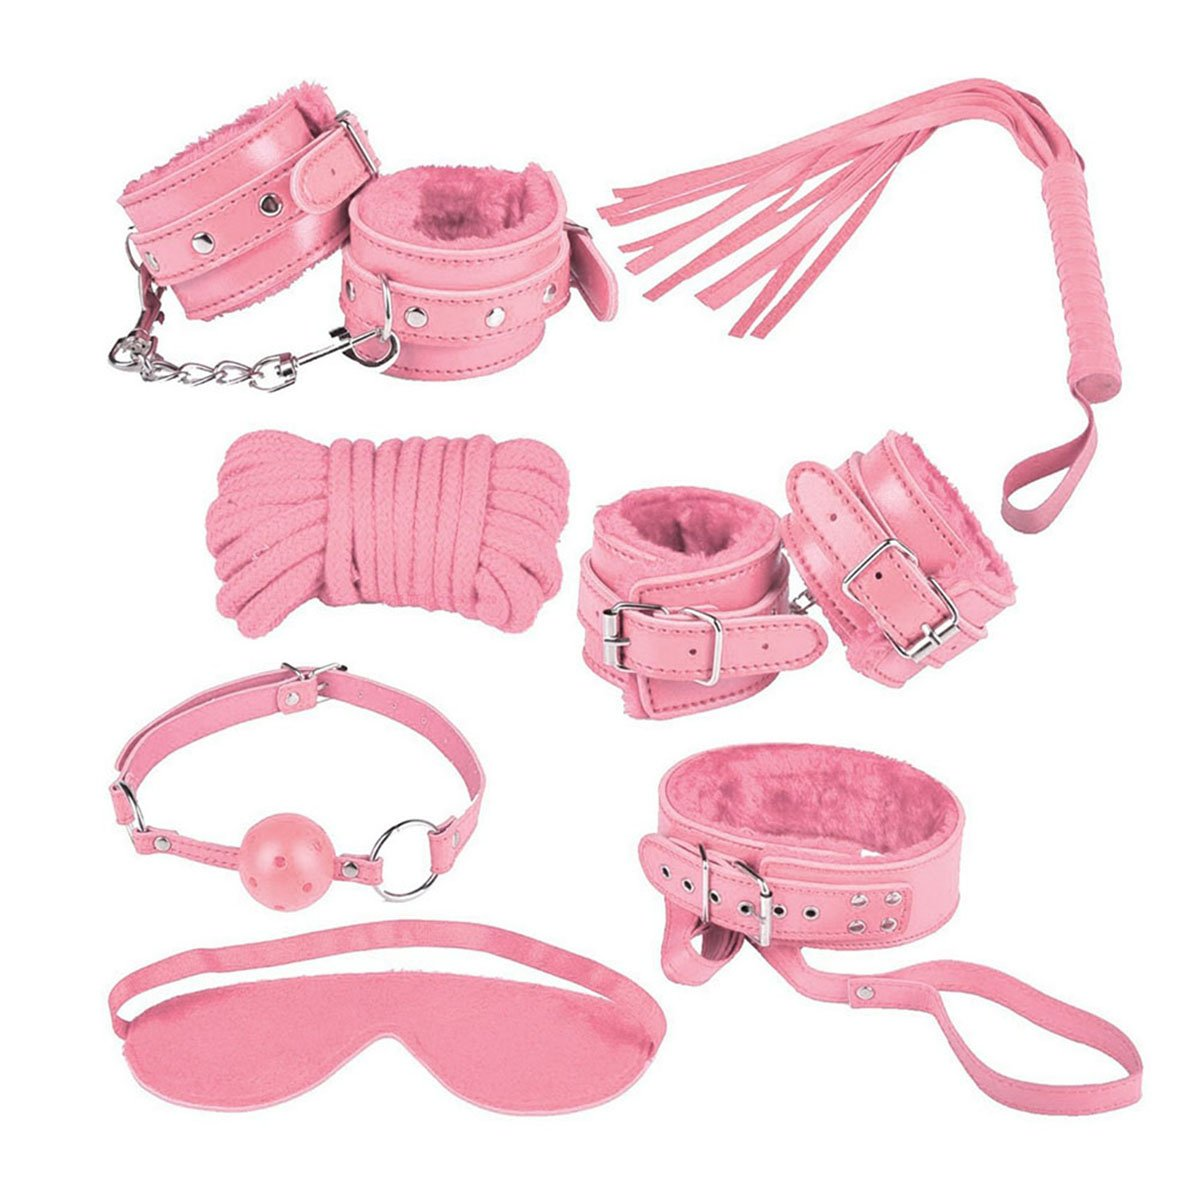 AKStore 7PCS Under the Bed Sex Bondage System Set Bed Restraints Kit Leather Ankle Cuffs Set For Male Female Couple(Pink)